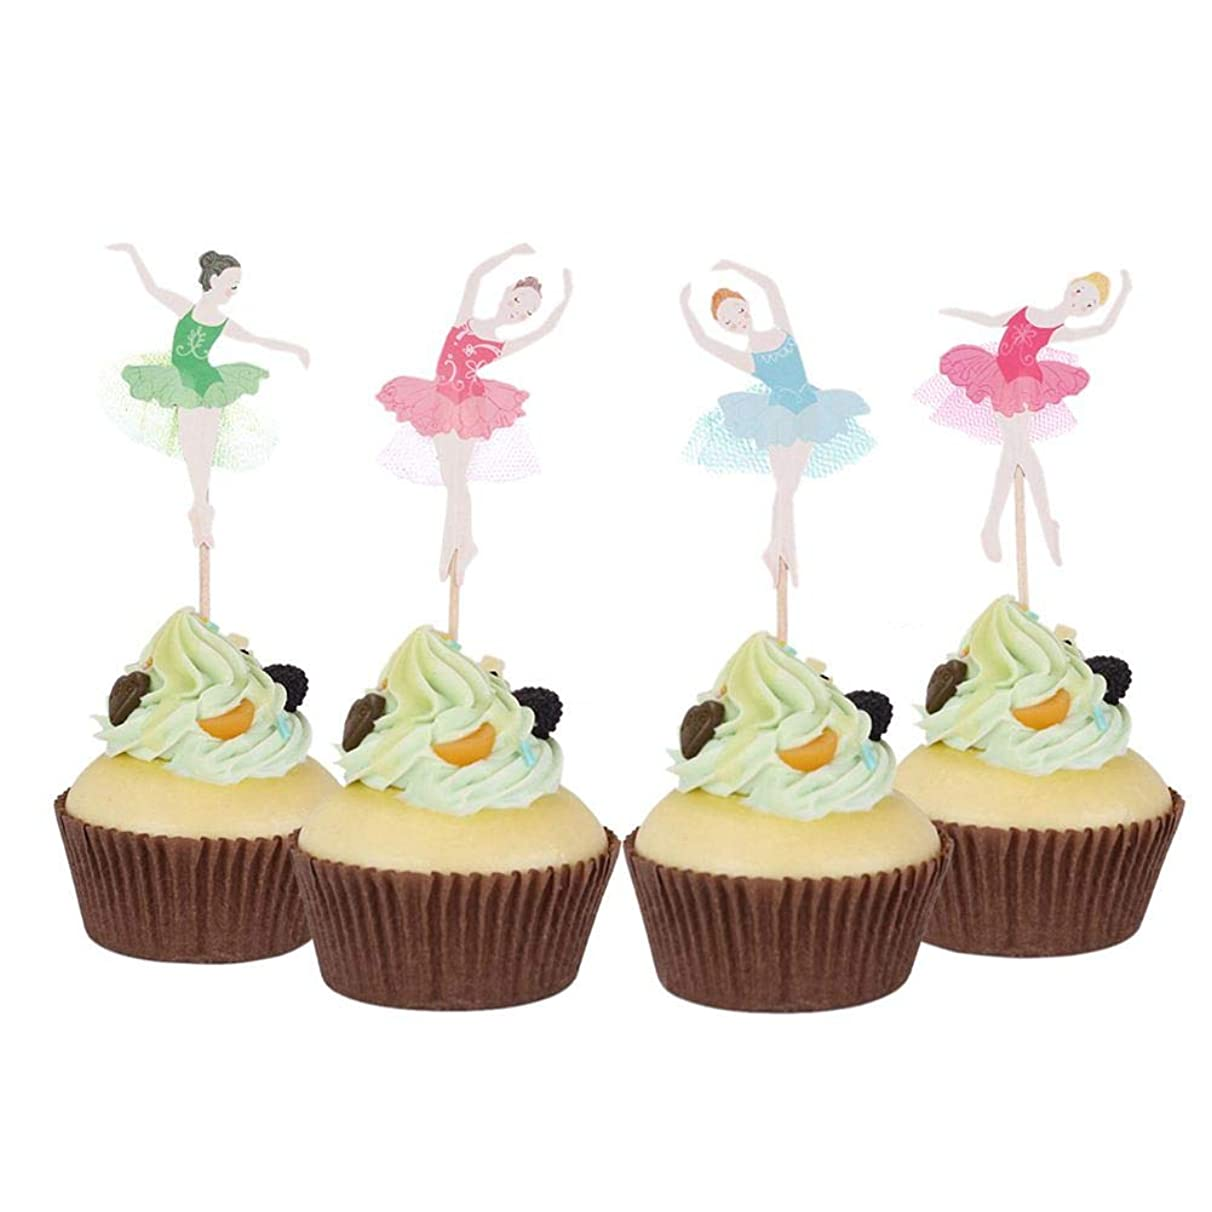 Cake Decorating Supplies - 24 Pcs Ballerina Girl Cupcake Baby Birthday Party Decorations Cake Card - Kit-baking Shower Beginners Molds Decorating Printer Poker Professional Camping Grass Br